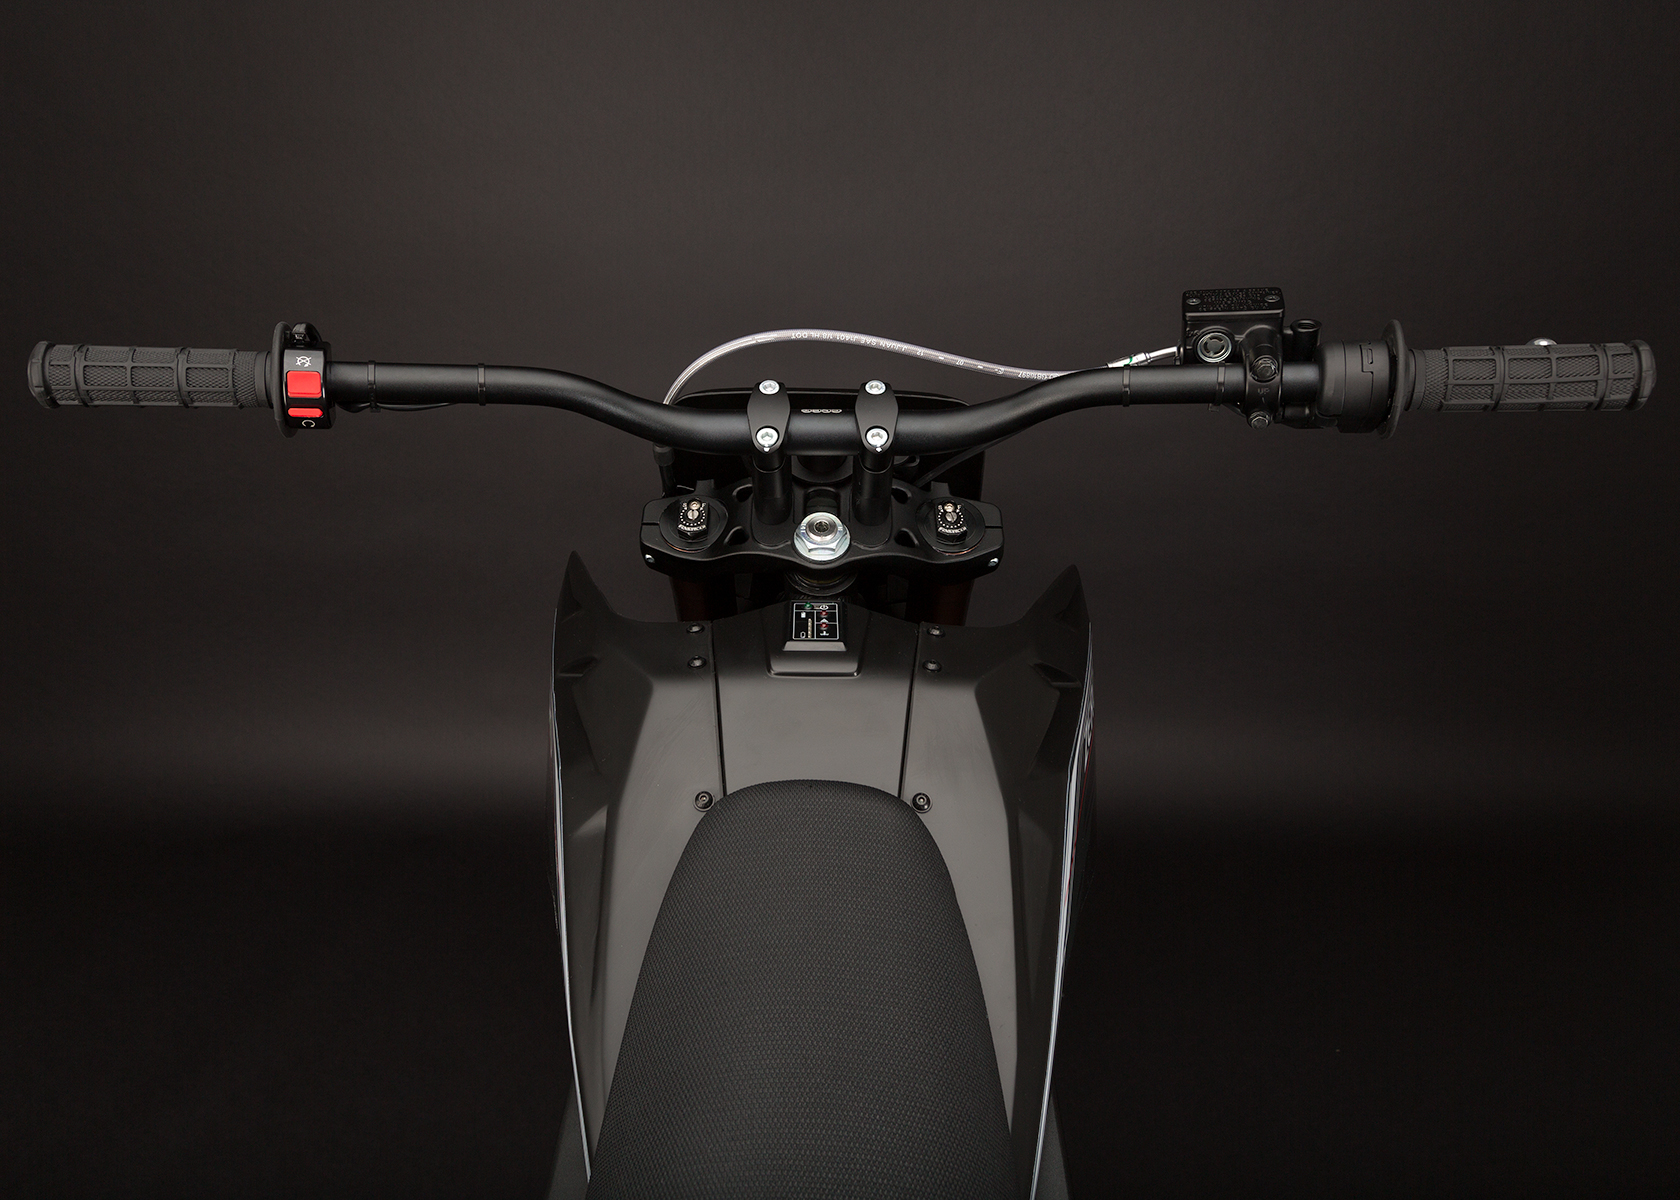 2013 Zero MX Electric Motorcycle: Rider View